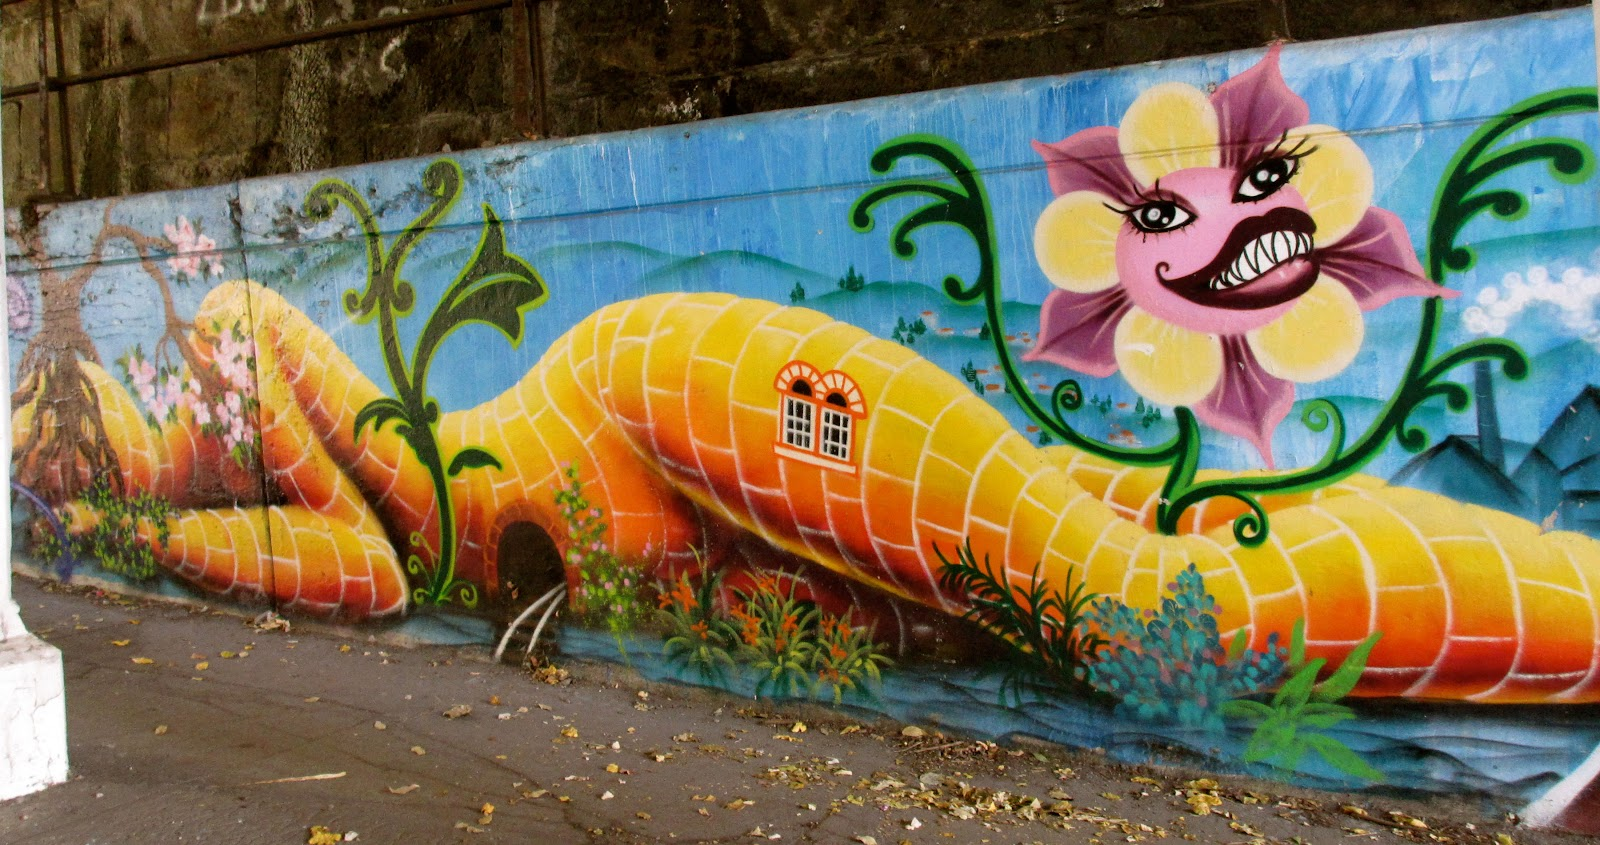 pittsburgh murals and public art brick woman by lady pink 06 september 2015